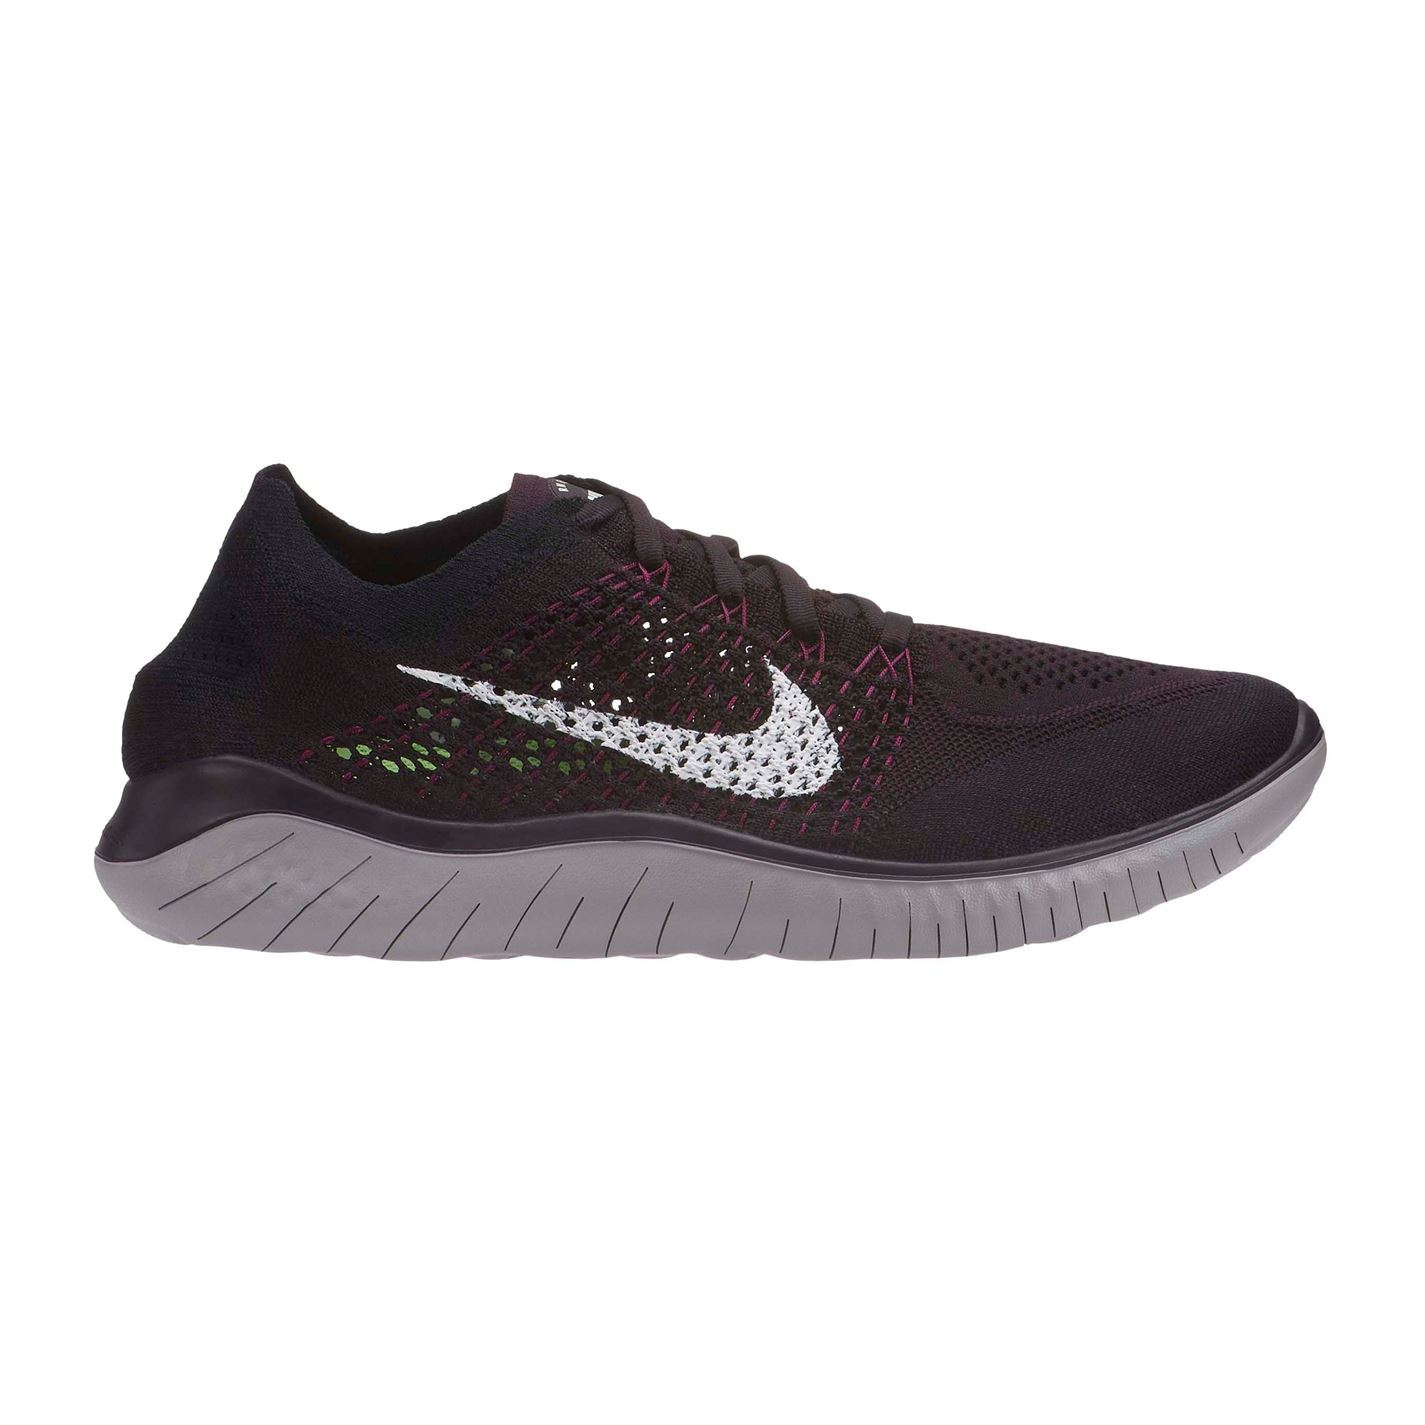 be7561b880cc0 Nike Free Rn Flyknit 2018 Running Shoes Hombre Fitness Trote ...